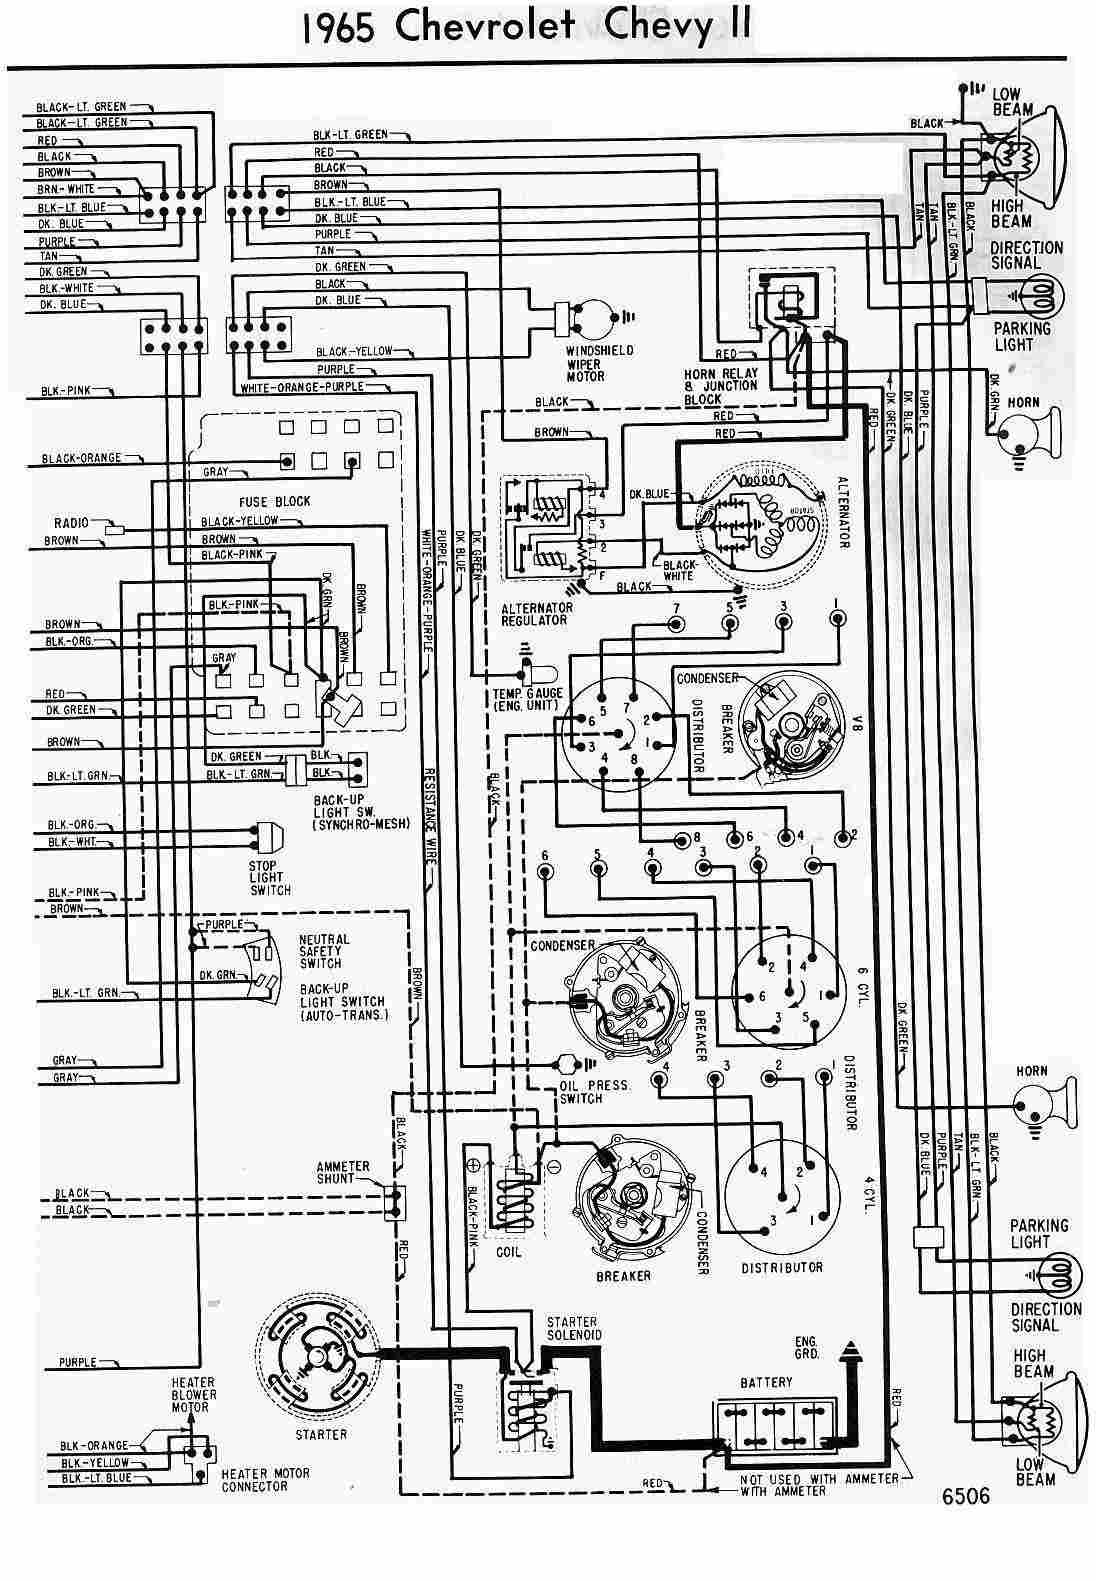 1976 corvette dash wiring diagram schematic simple wiring diagramswiring diagram 1964 chevy corvette wiring diagrams 1977 [ 1096 x 1581 Pixel ]